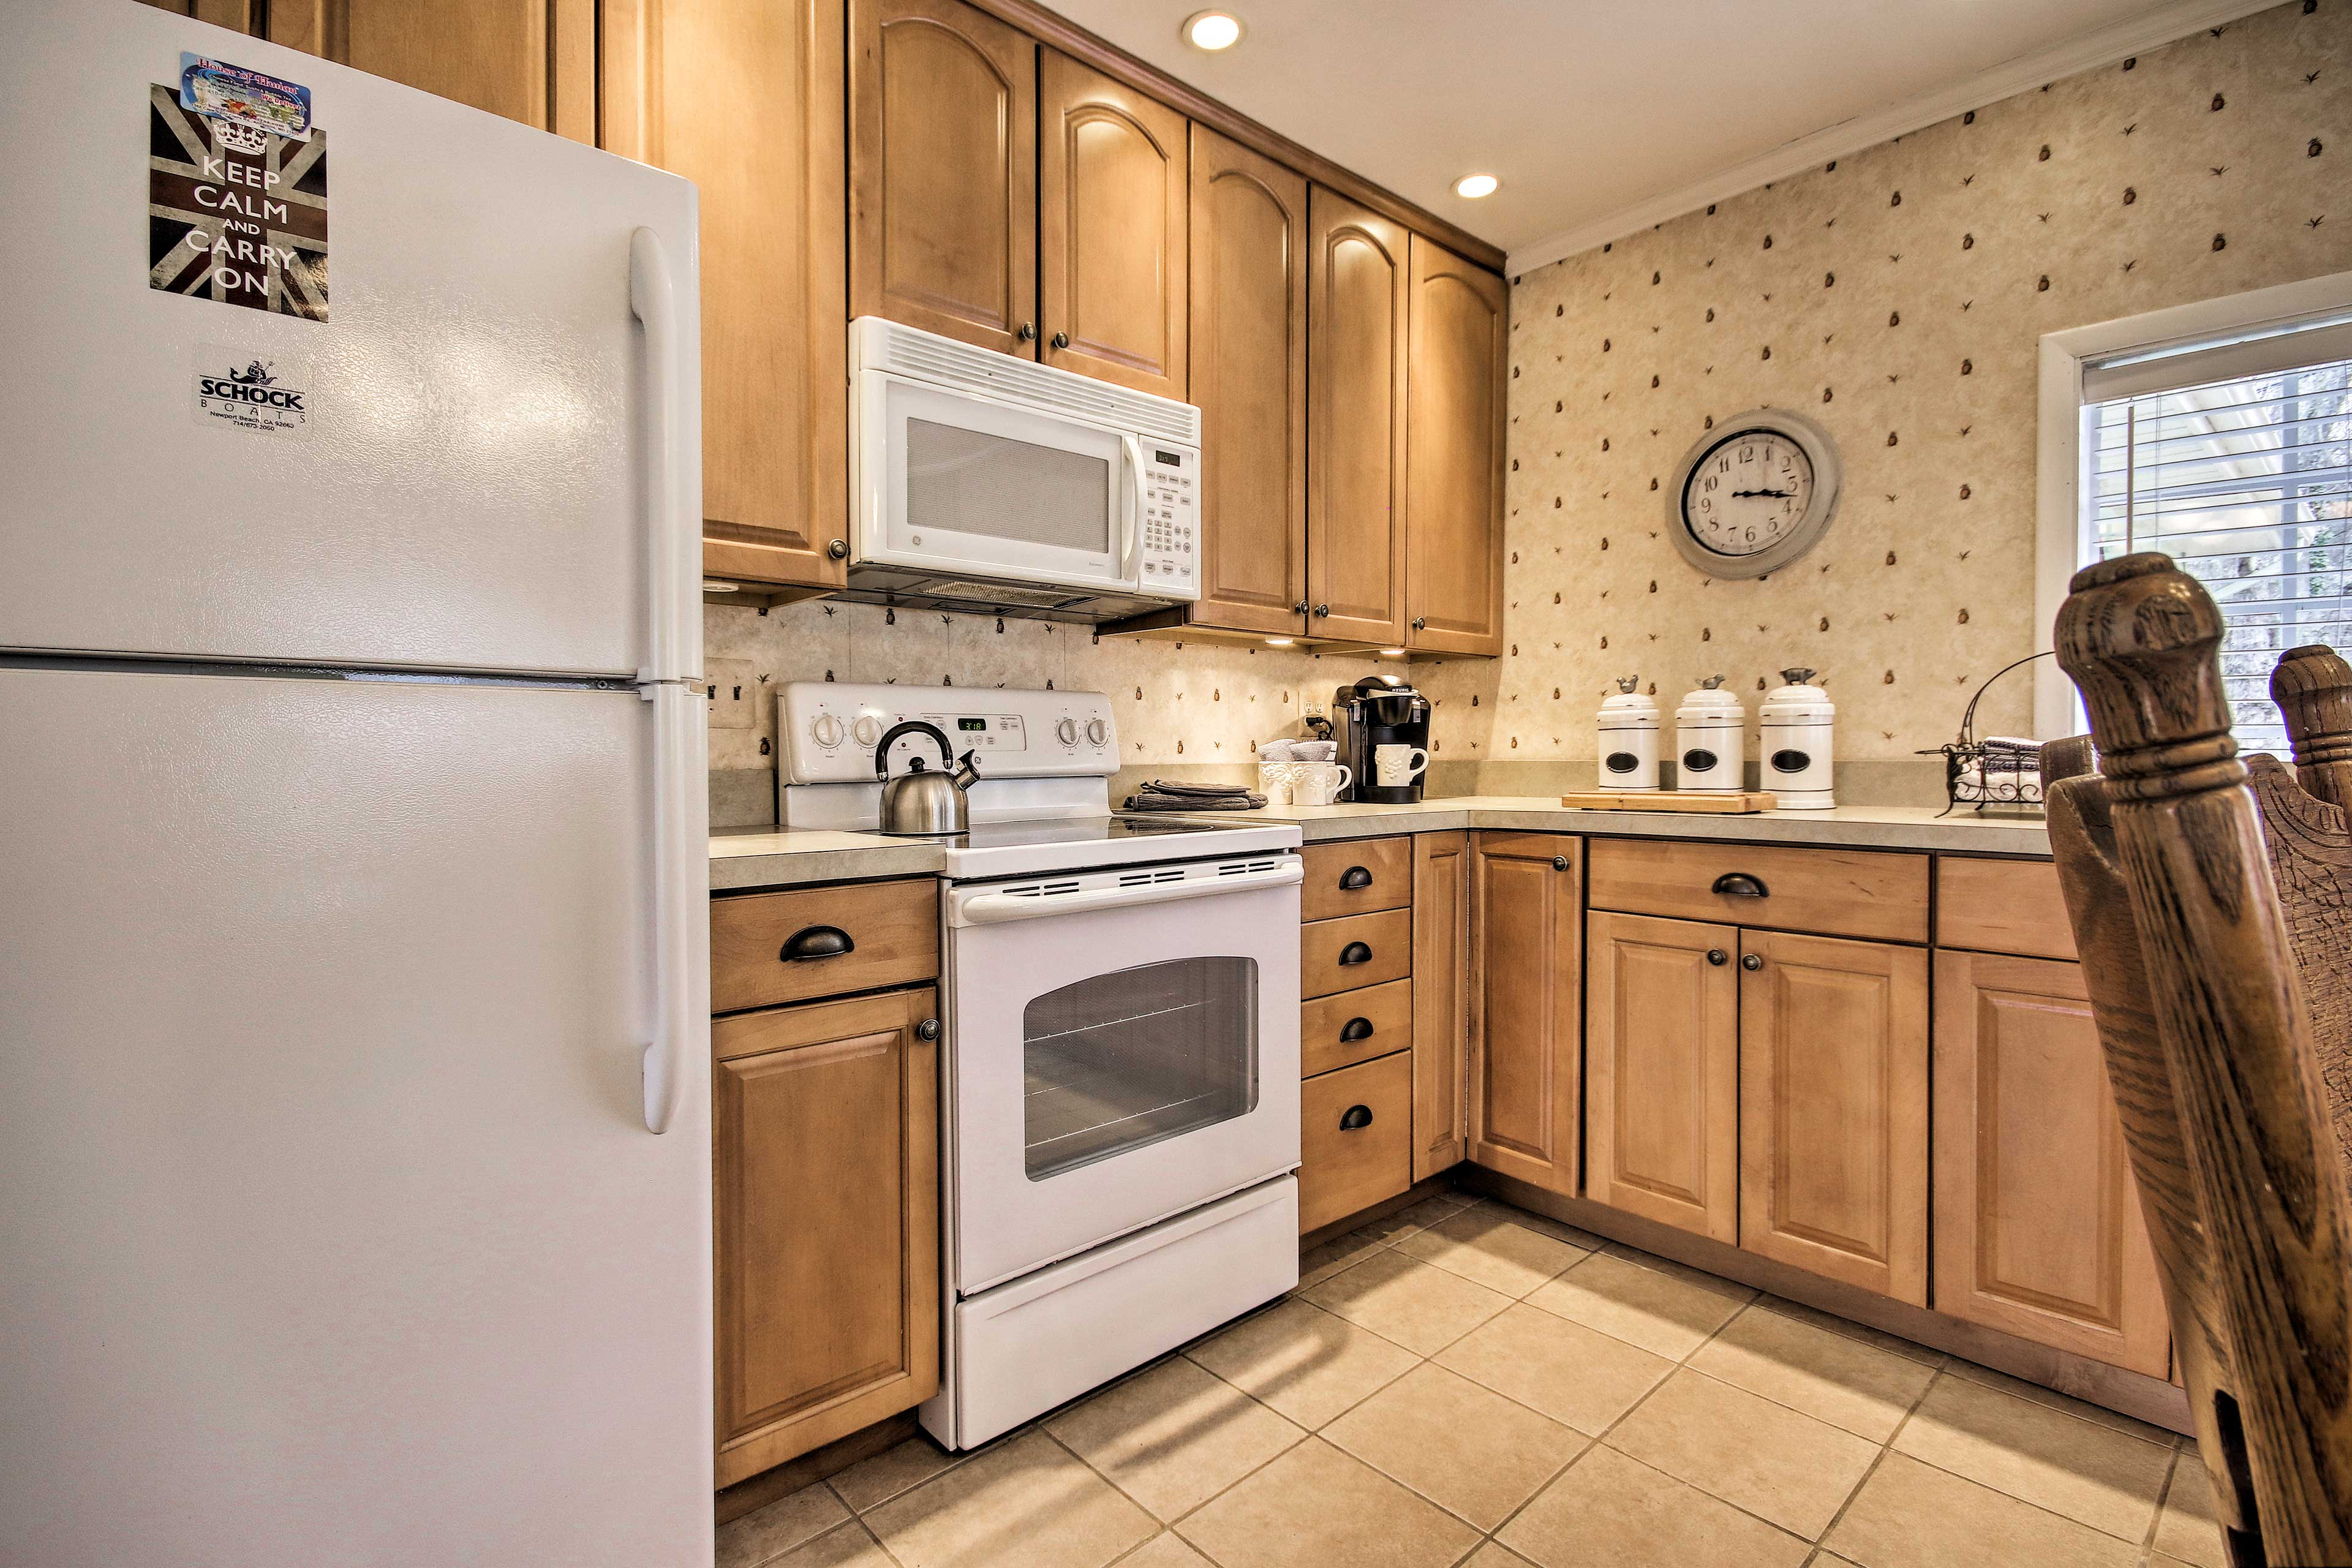 Easily prepare meals in the fully equipped kitchen.